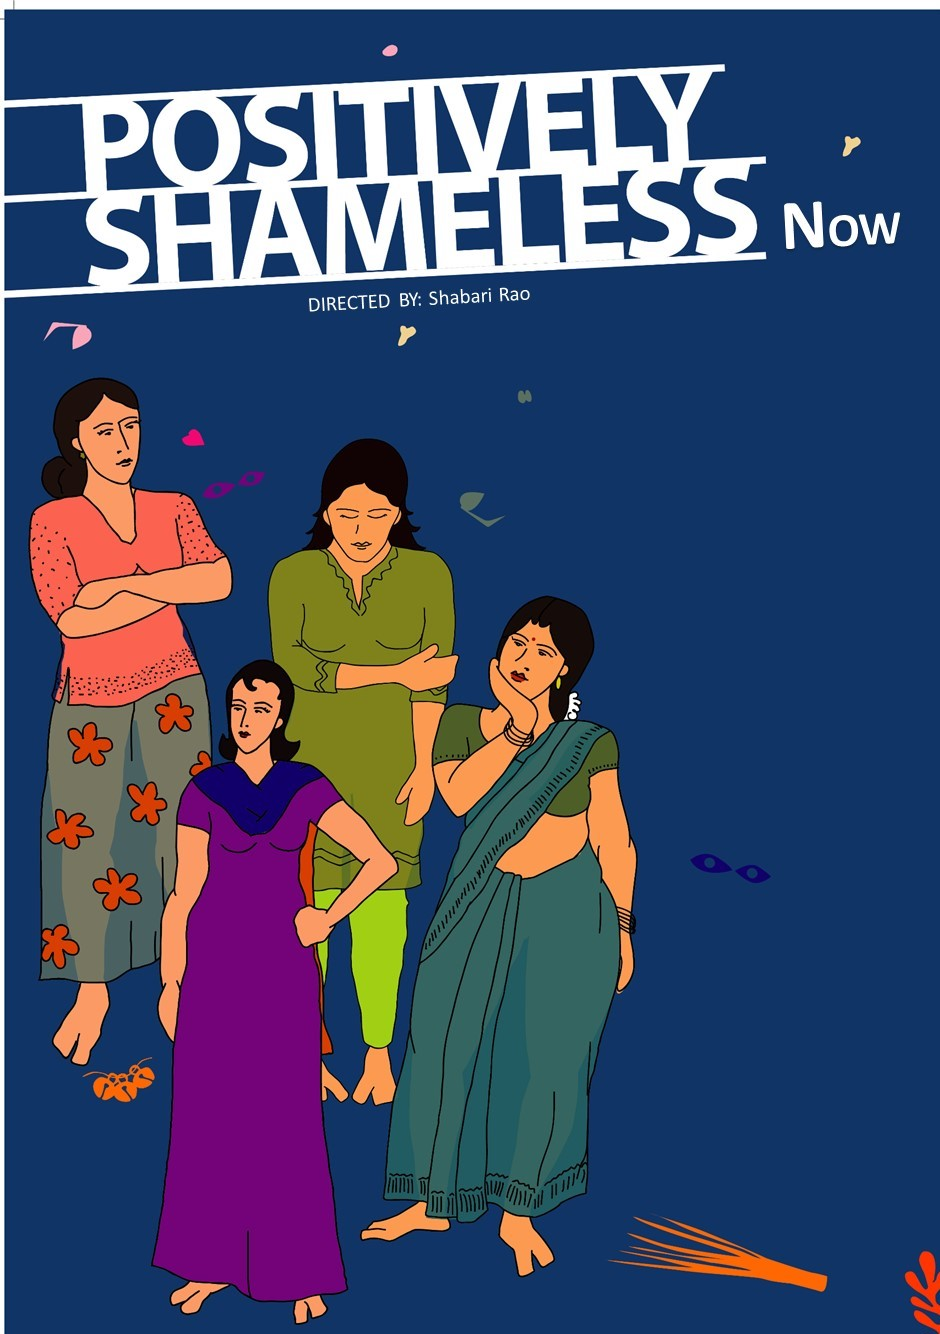 'Positively Shameless Now' Brings Workshop, Performance to Campus October 30 and 31